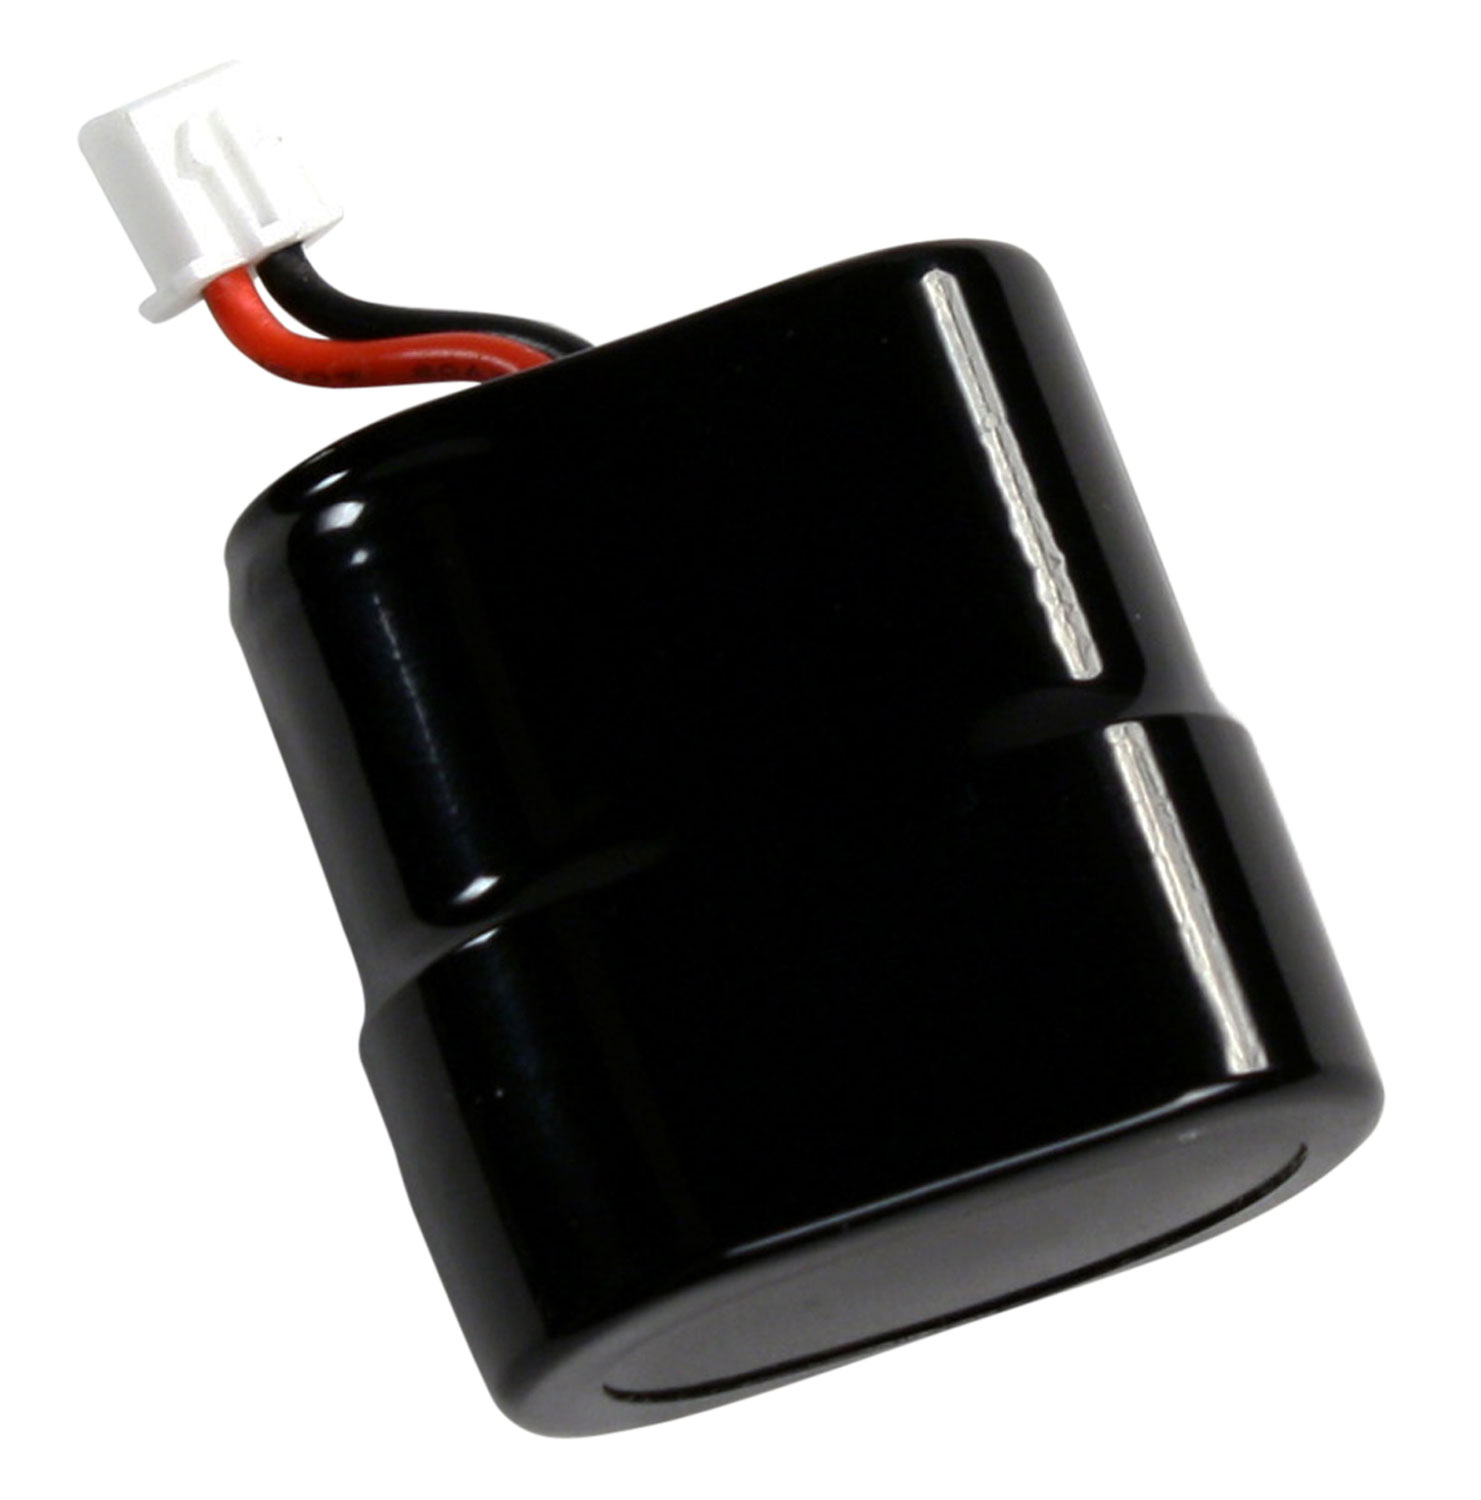 TASER PULSE BATTERY PACK